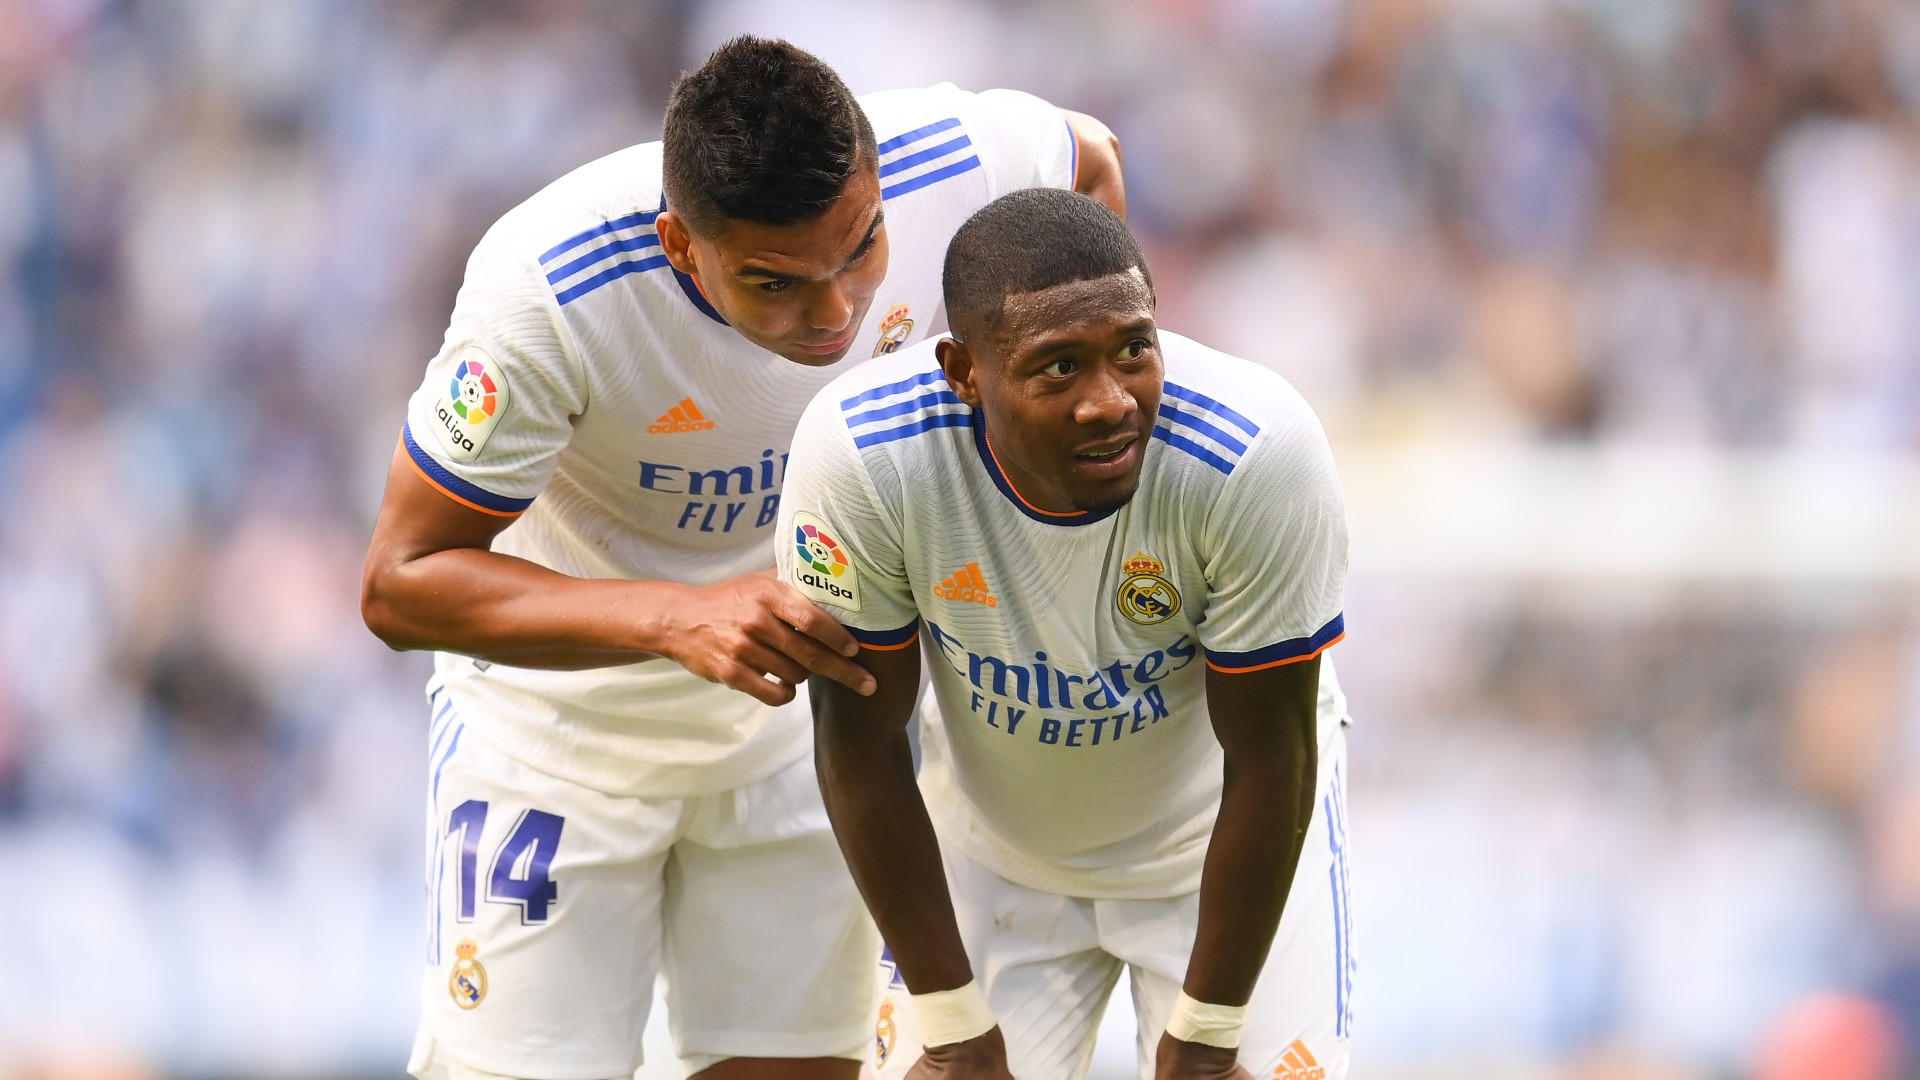 Real Madrid sweating on Alaba availability for Clasico as he returns from Austria duty with knee injury